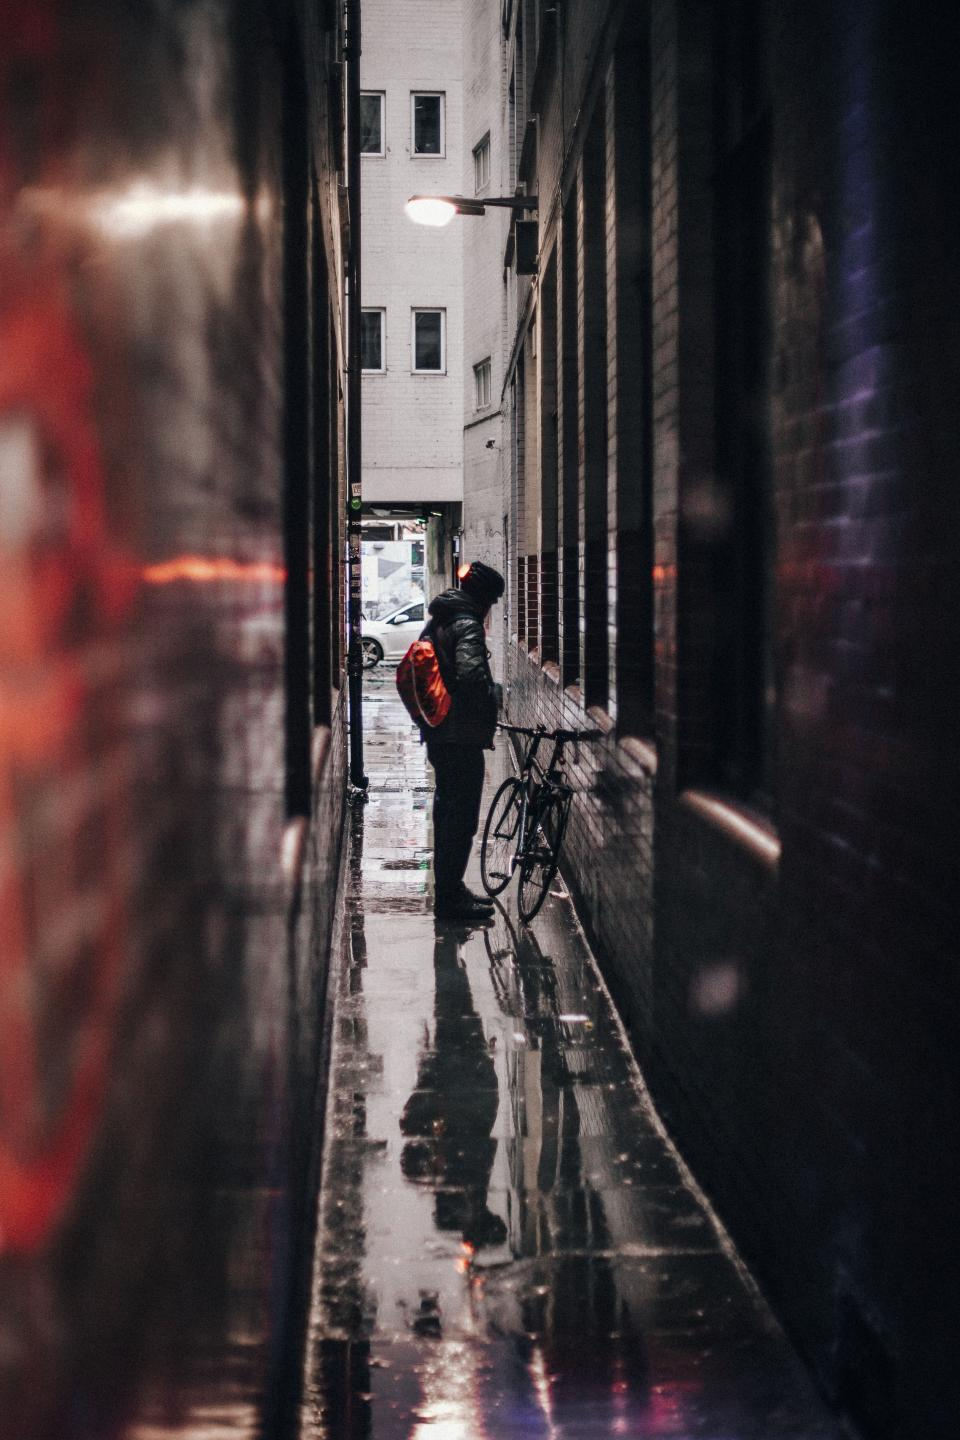 people, man, alone, alley, sad, rain, bicycle, bike, architecture, building, apartment